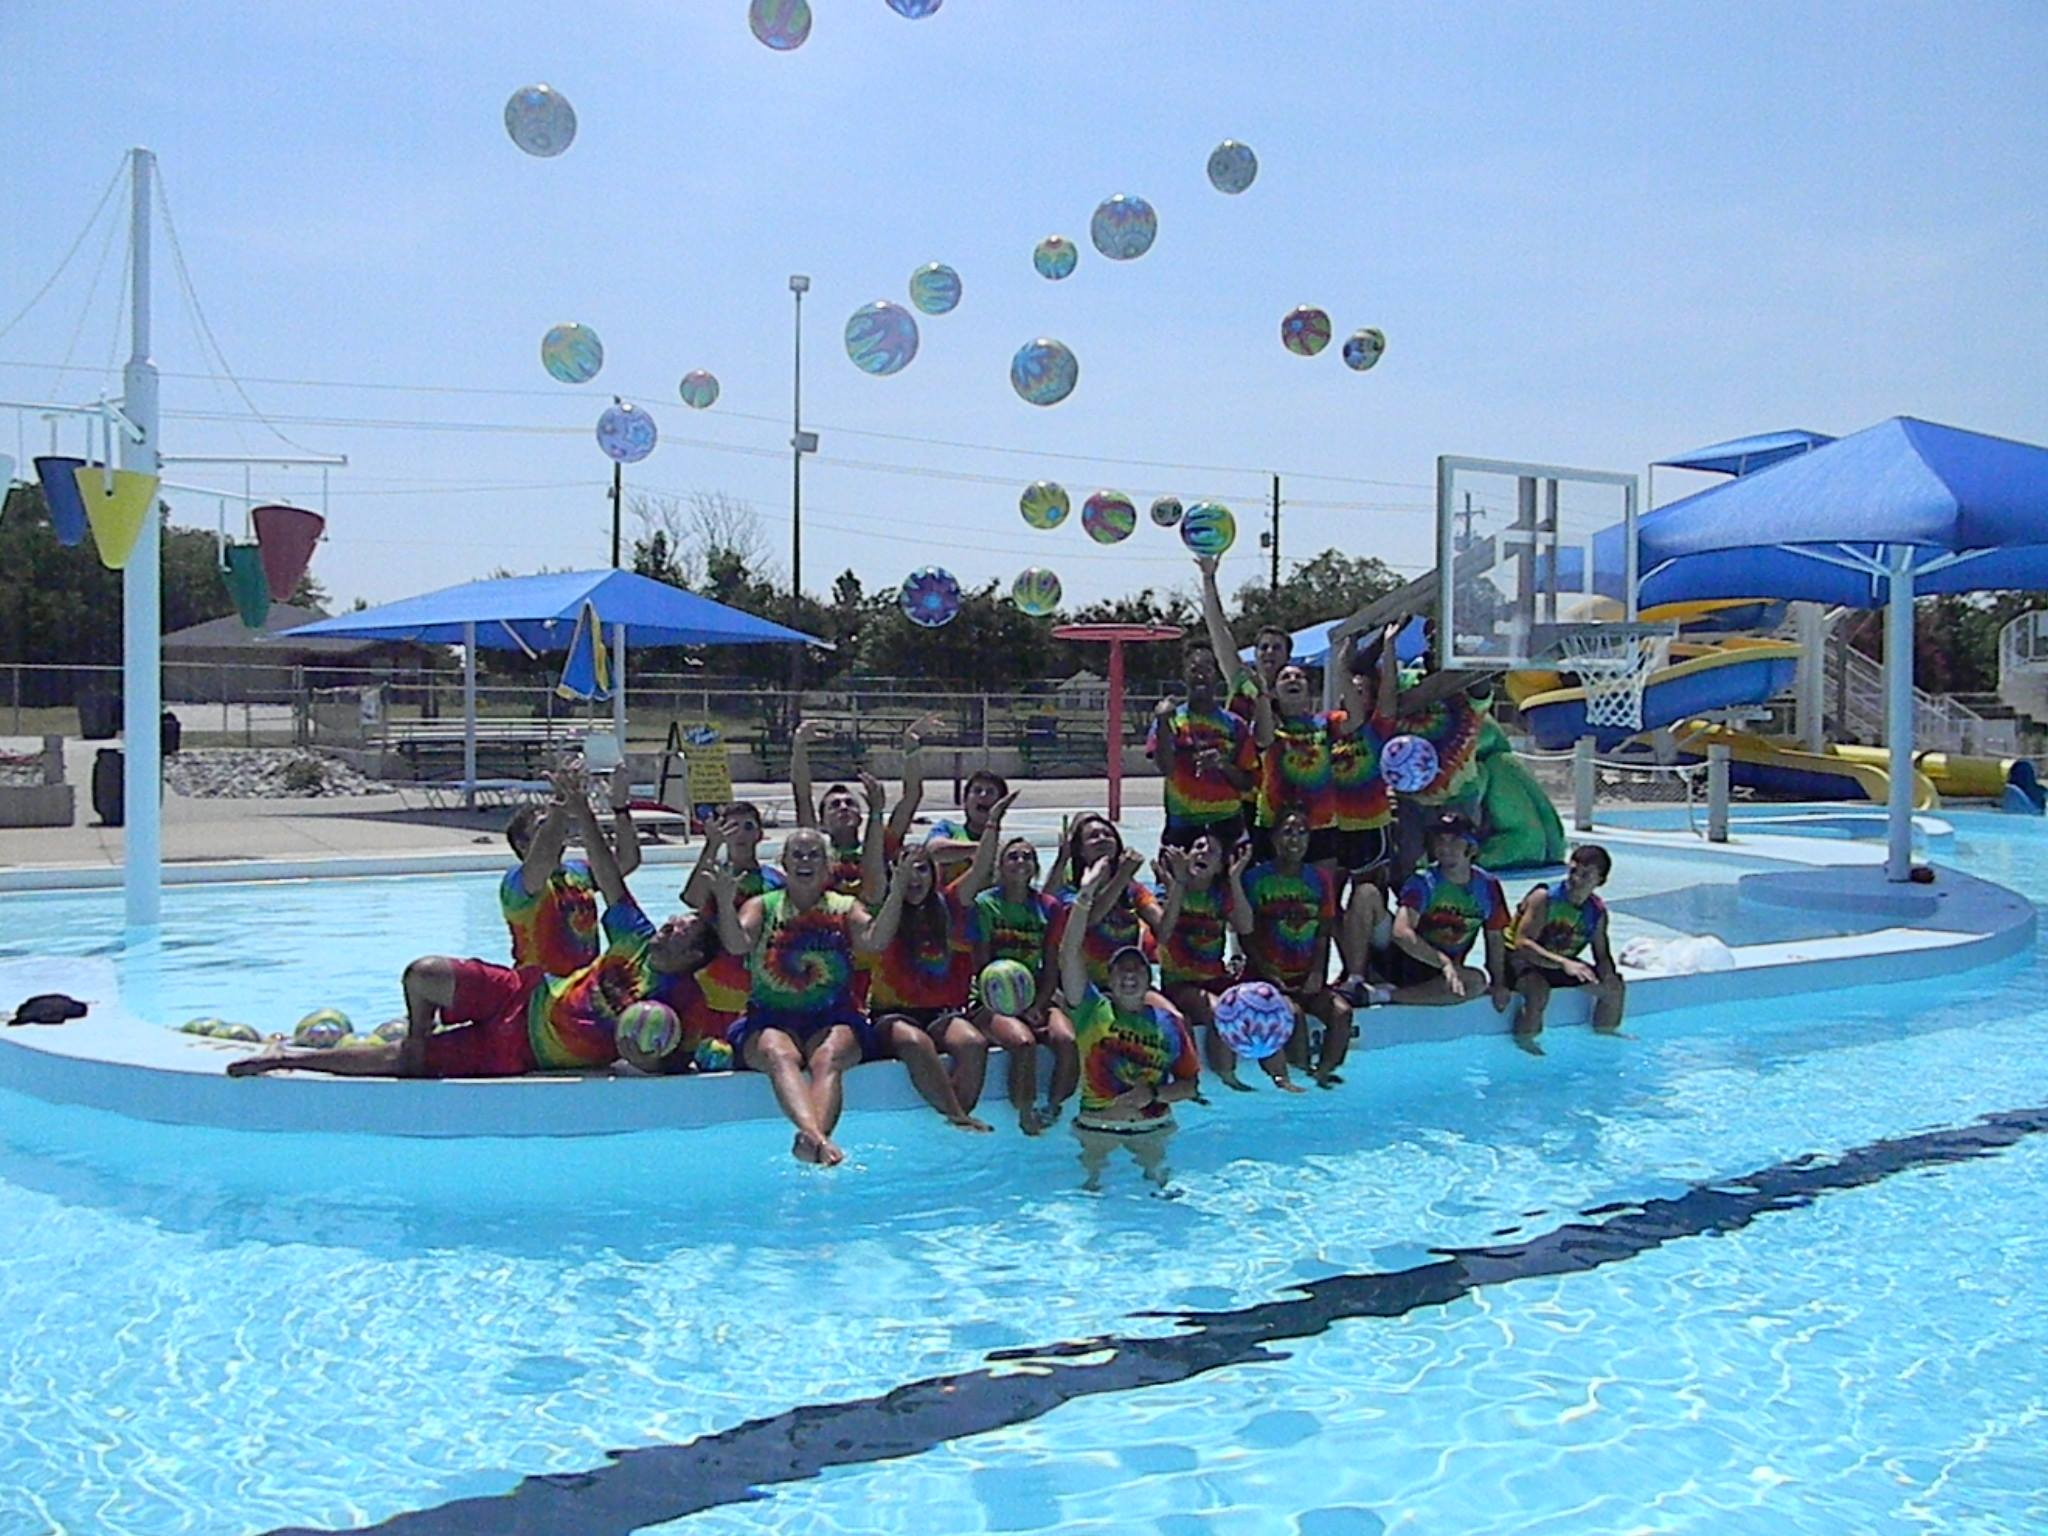 group photo of the lifeguards at the waterpark